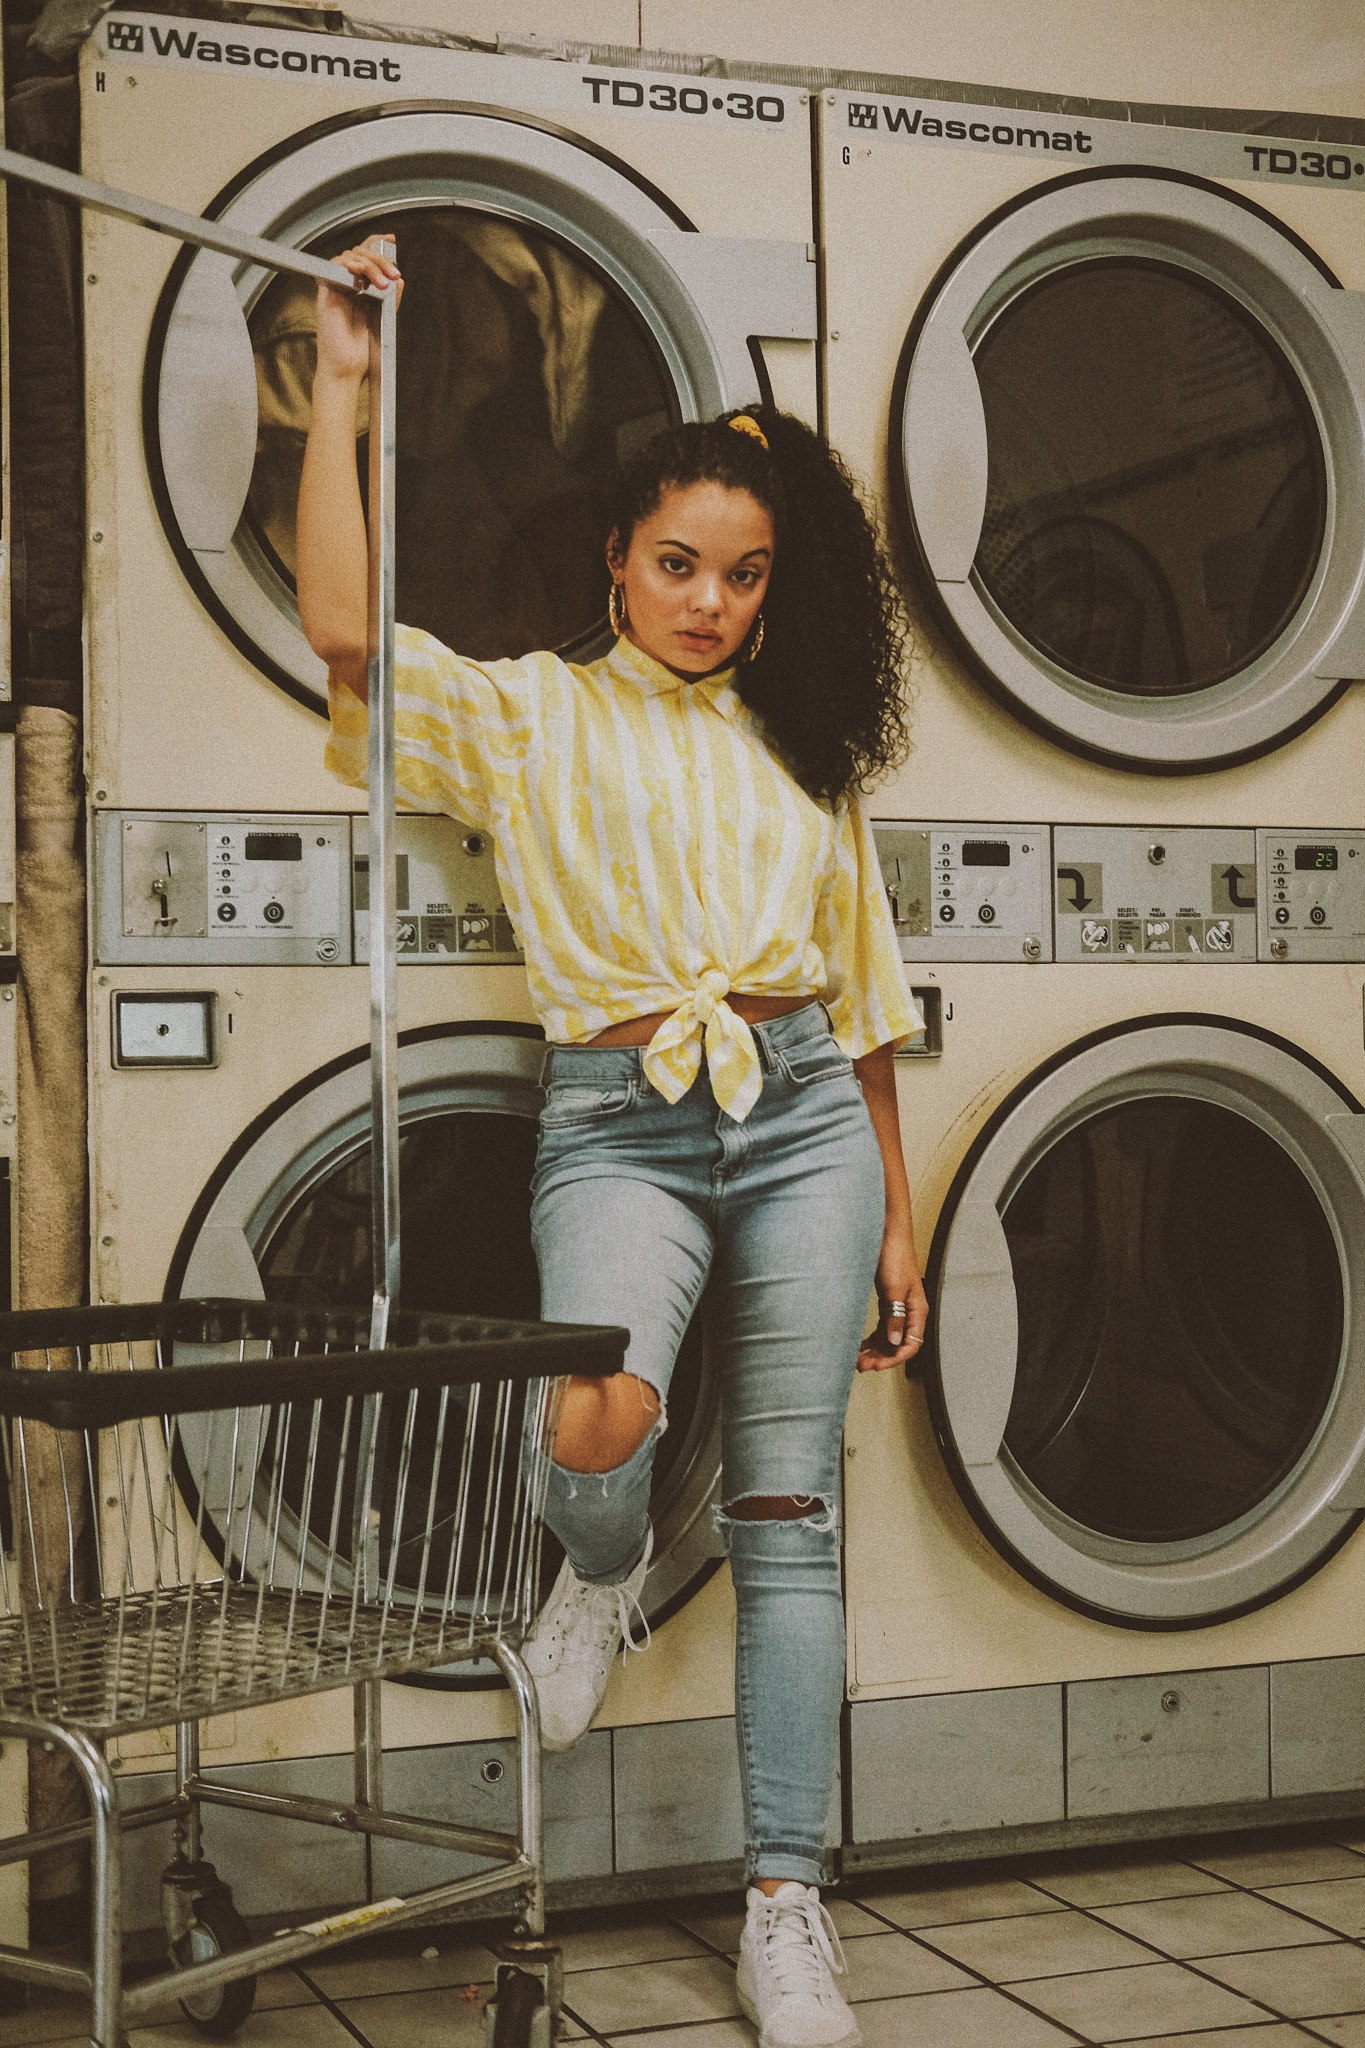 Laundromat bliss 2 by Swan Lake Photography